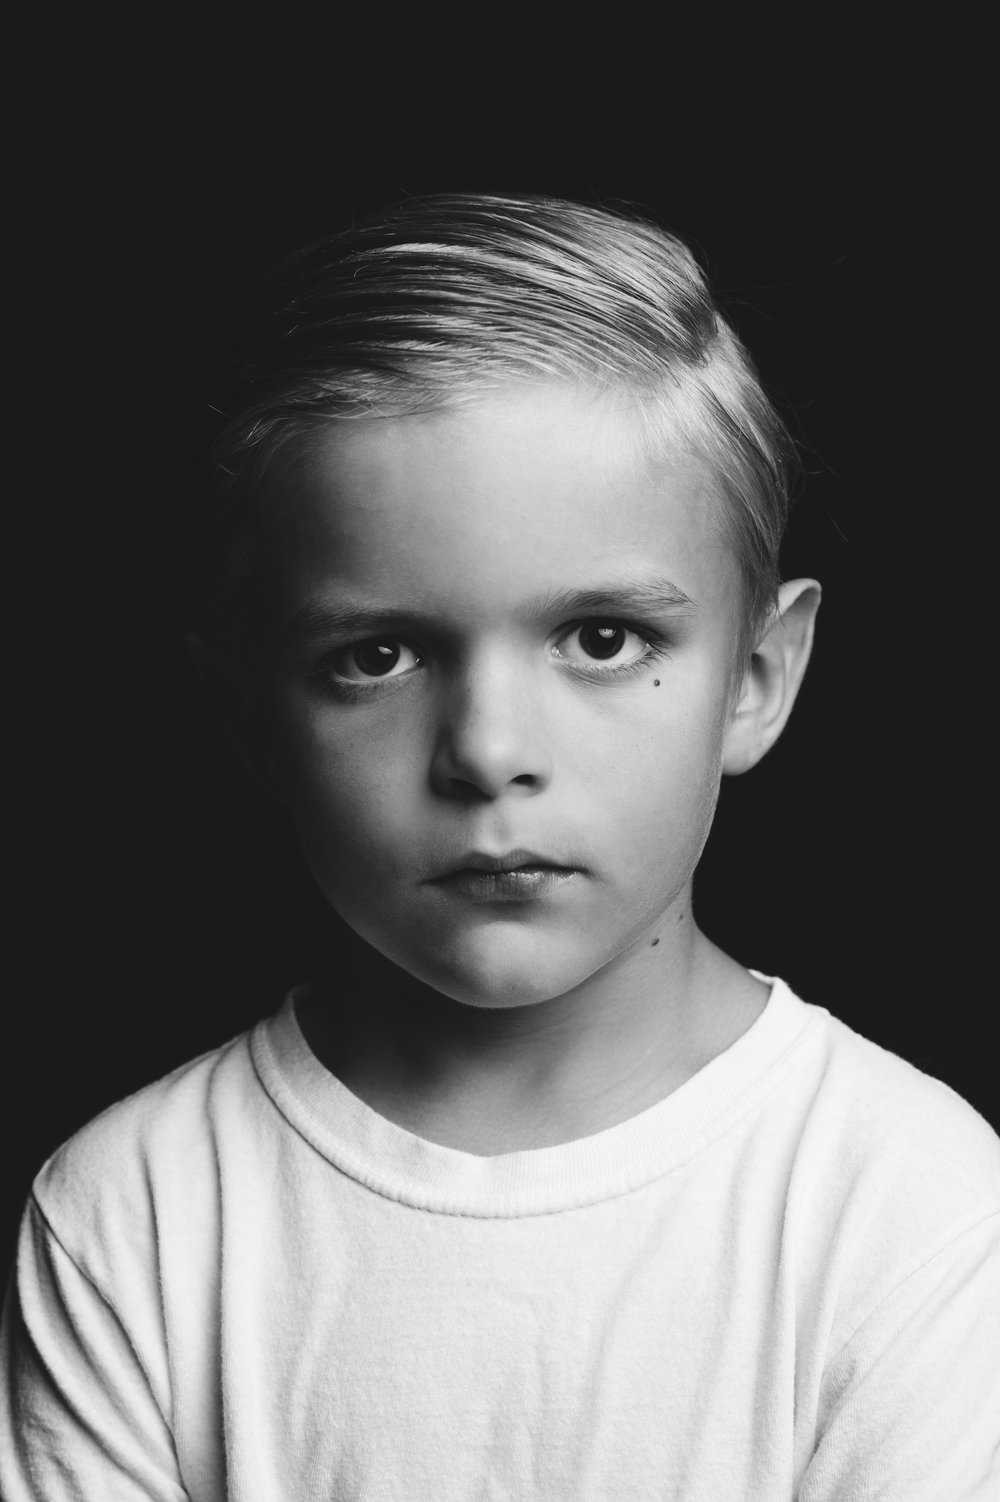 A simple yet powerful portrait of our son Liam.  Stripped of all possible distractions.  Simple.wins.always.